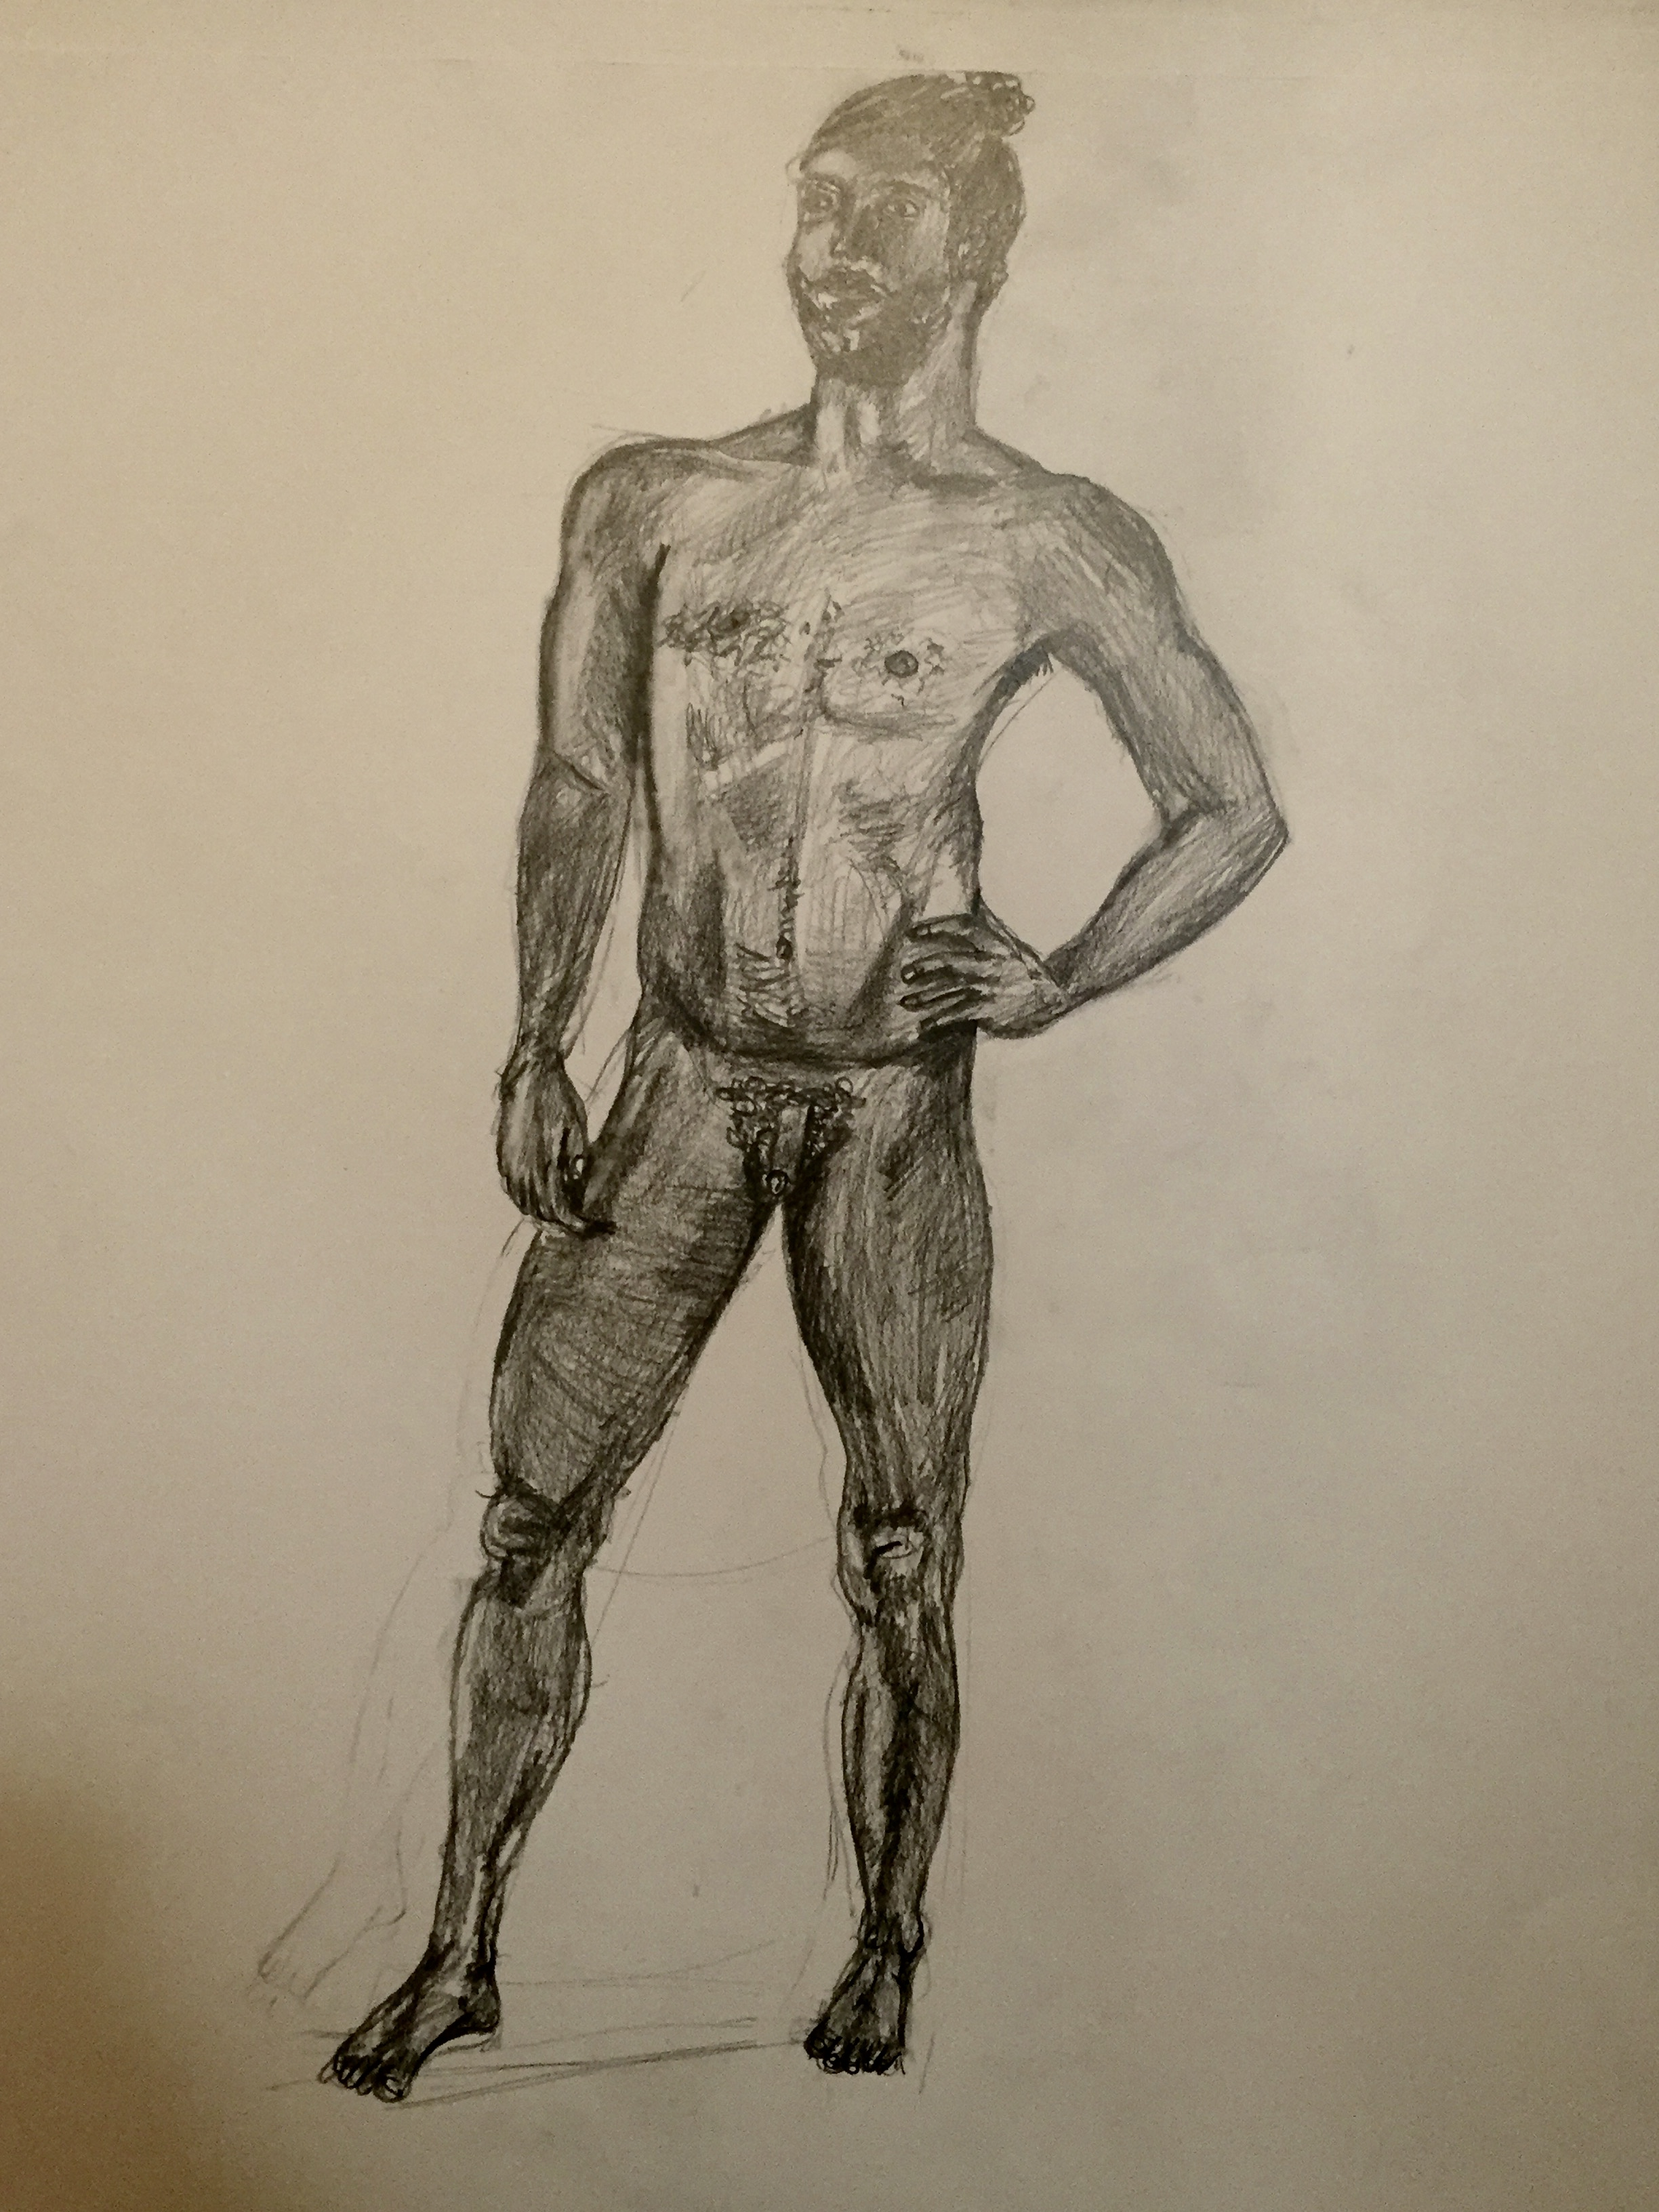 Nude drawing man – pencil